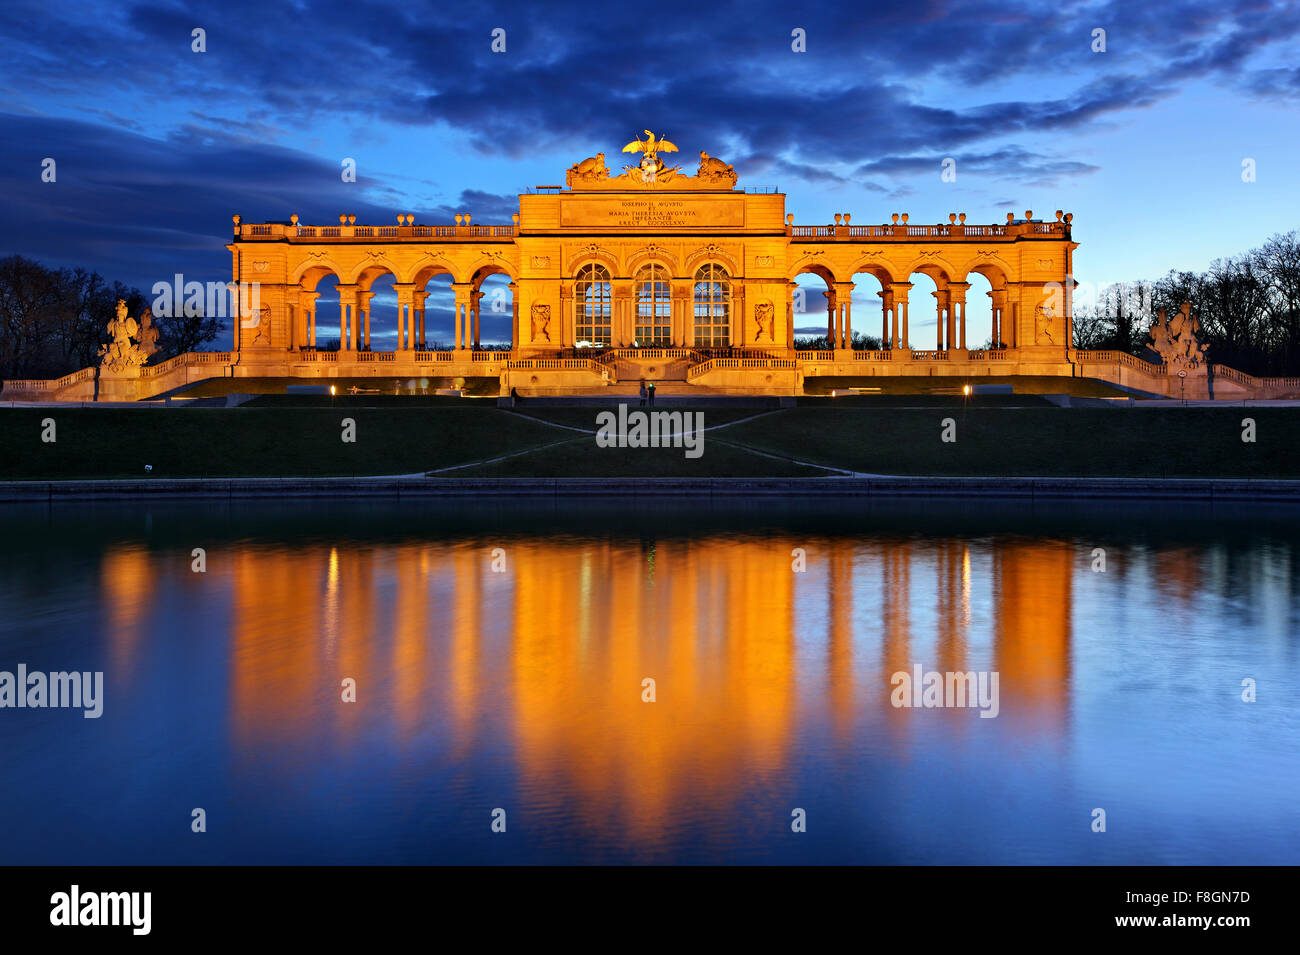 The Gloriette, the 'belvedere' of Schönbrunn palace, Vienna, Austria. - Stock Image